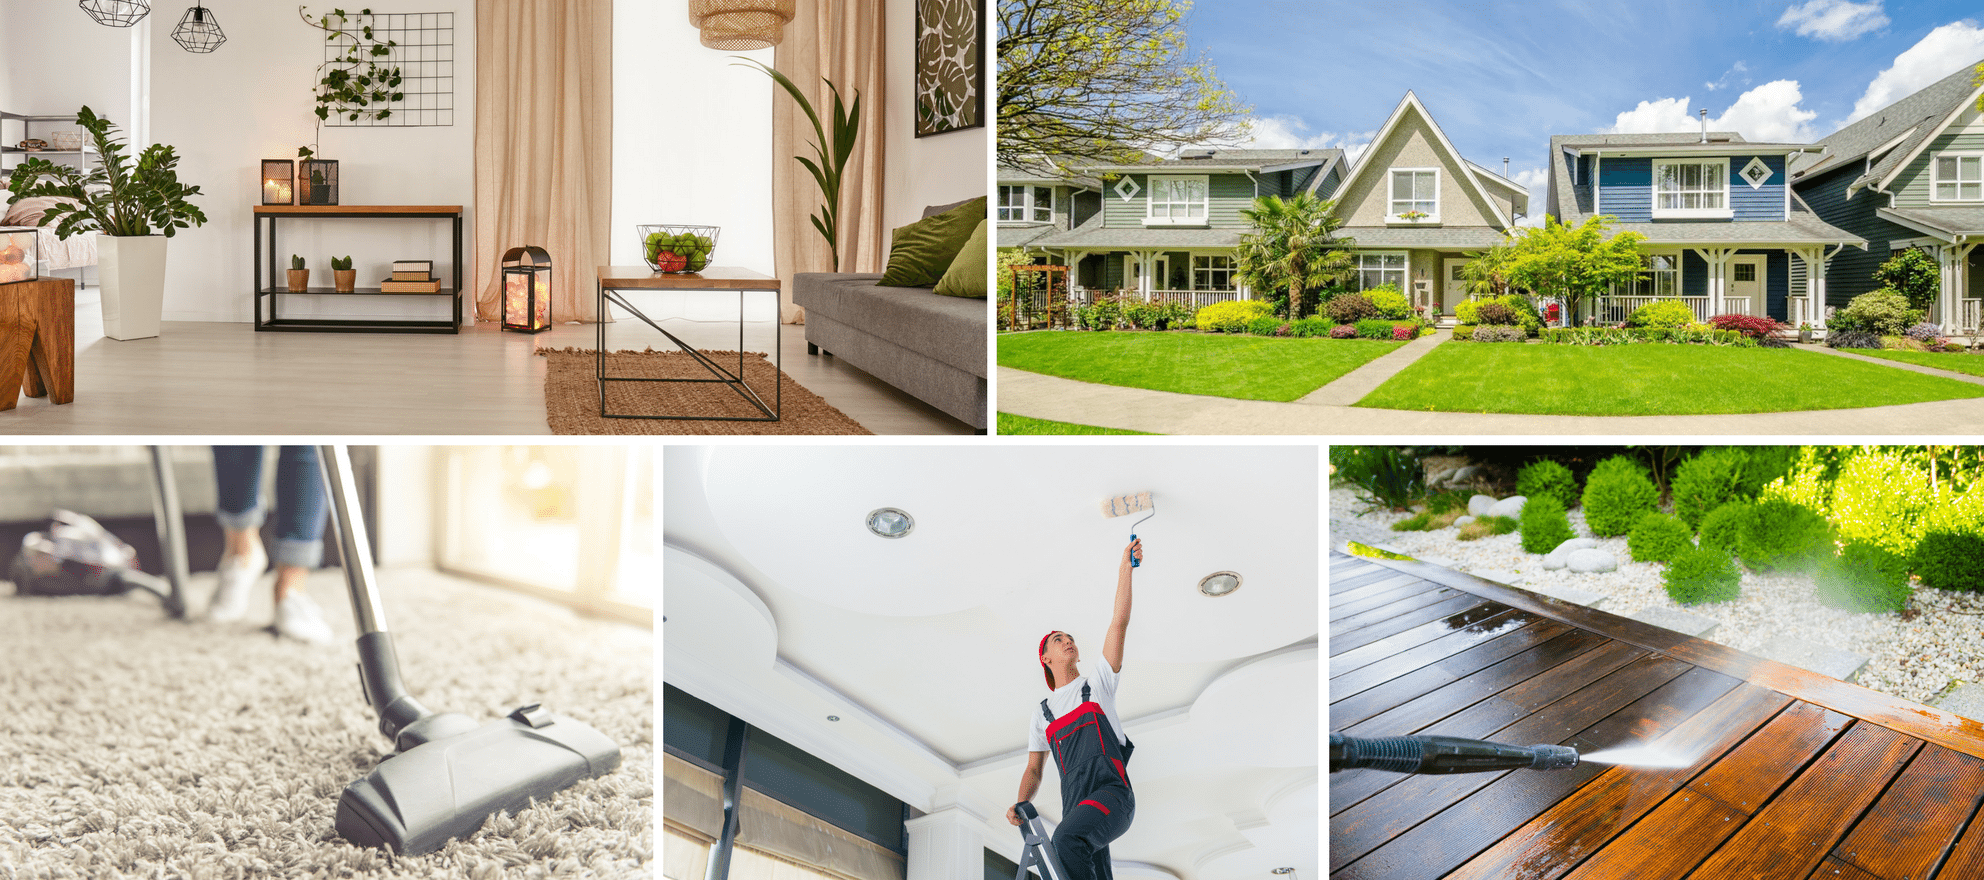 6 Tips To Help Sellers Stage Their Home While Living In It